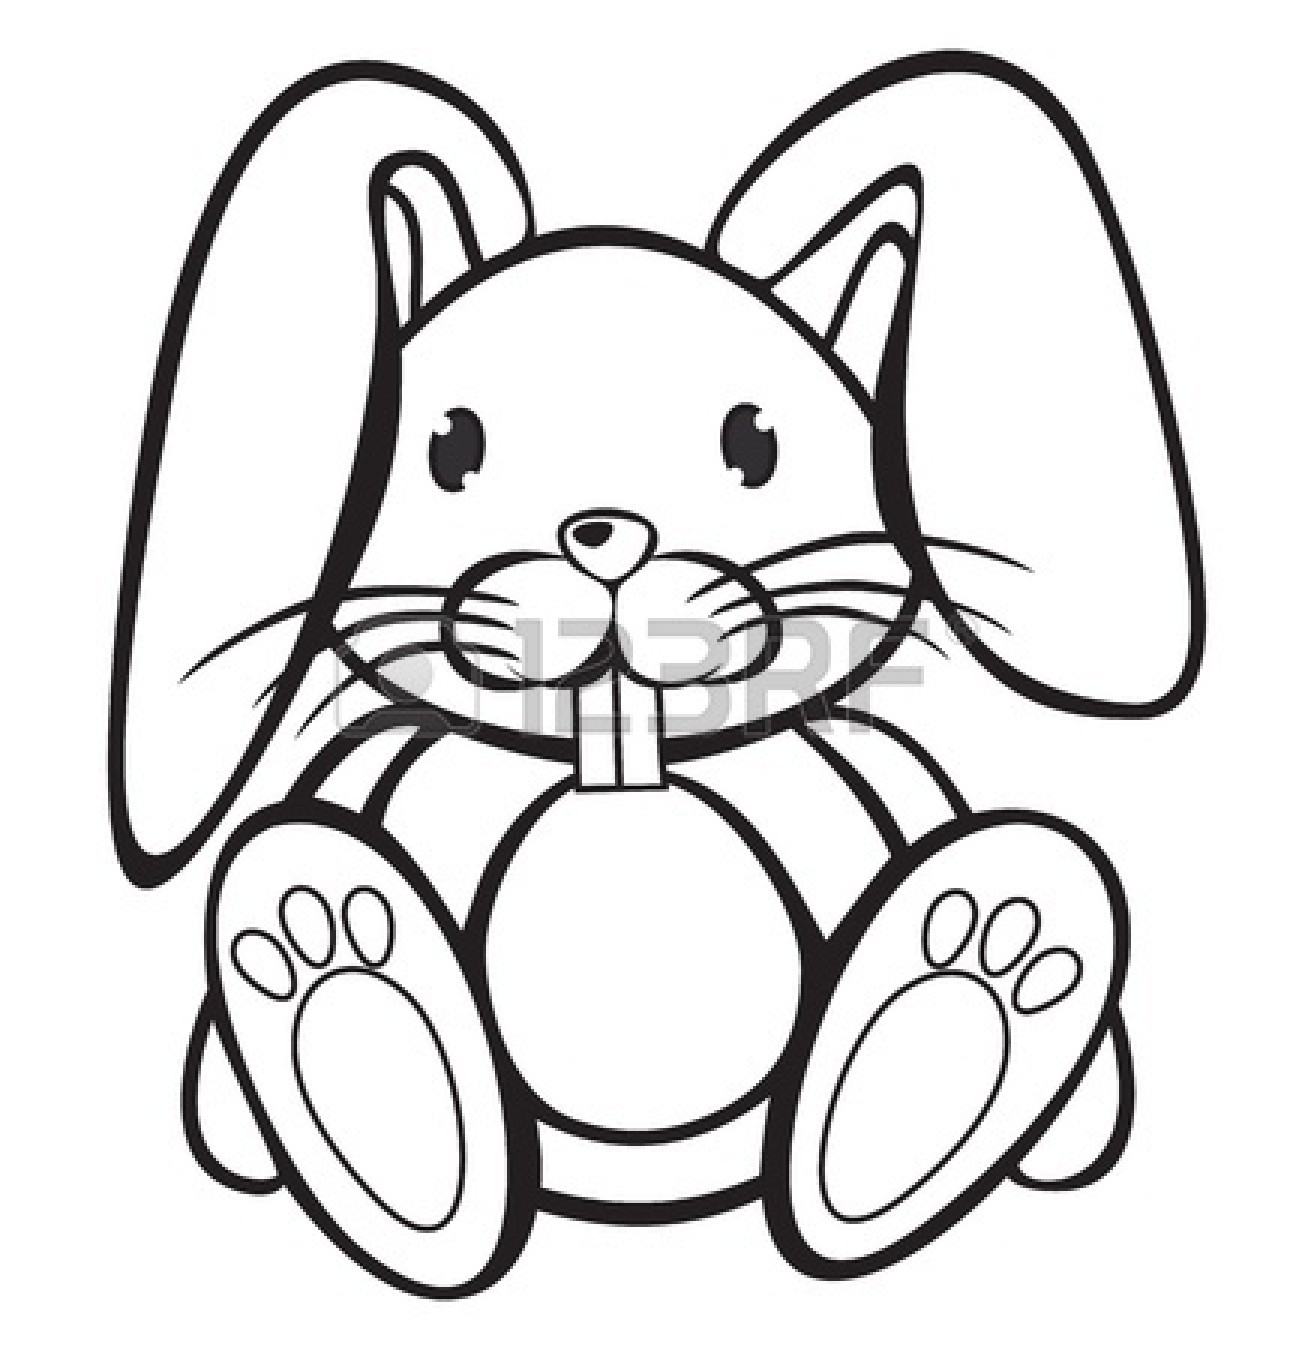 20 Cute Bunny Clip Art Free Coloring Pages Ideas And Designs